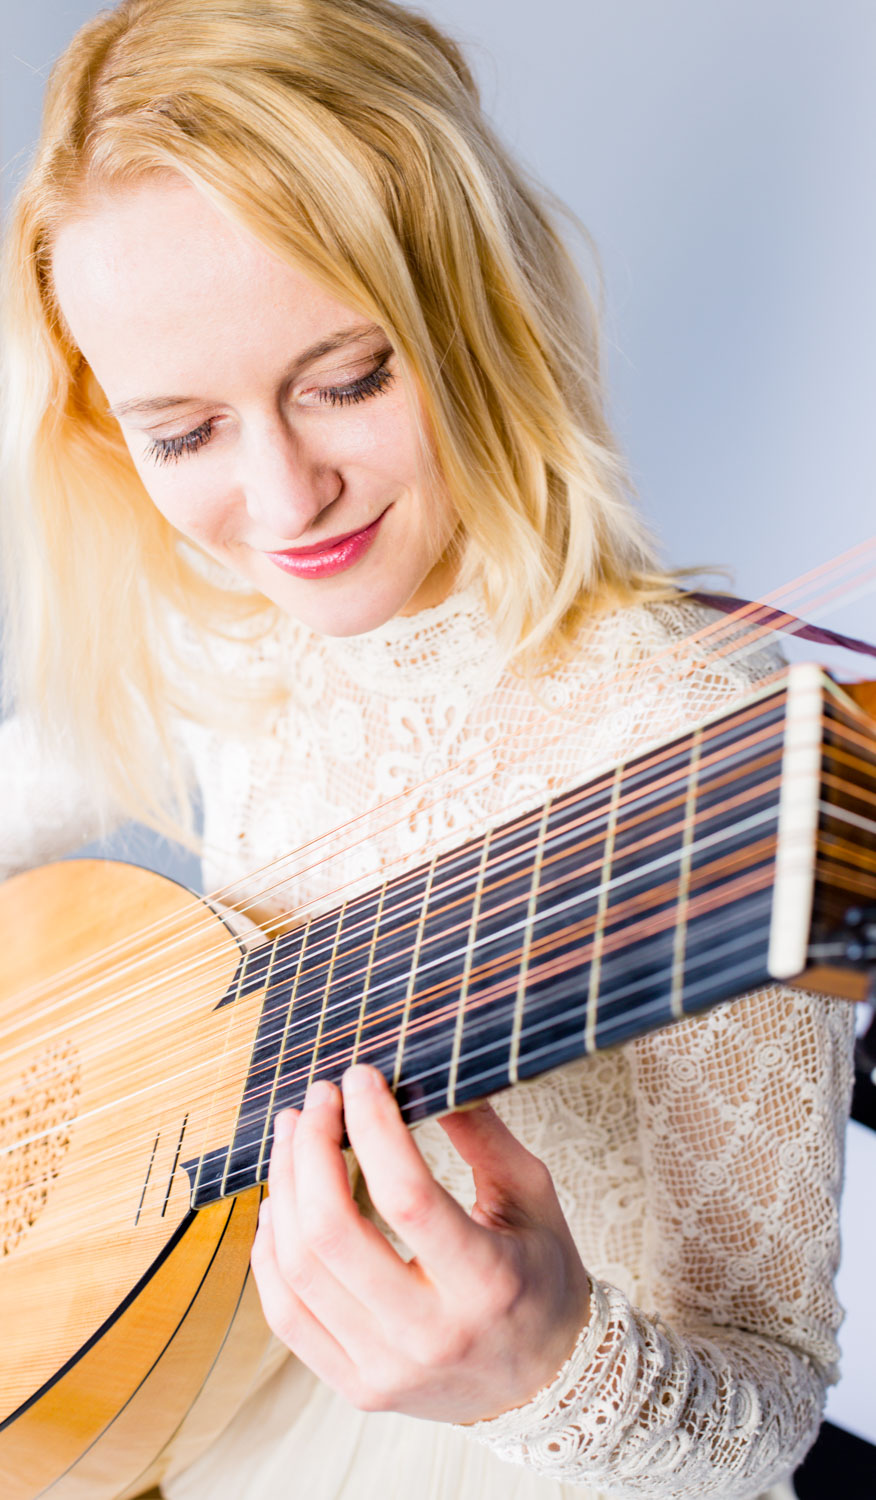 Ieva Baltmiskyte on lute guitarist